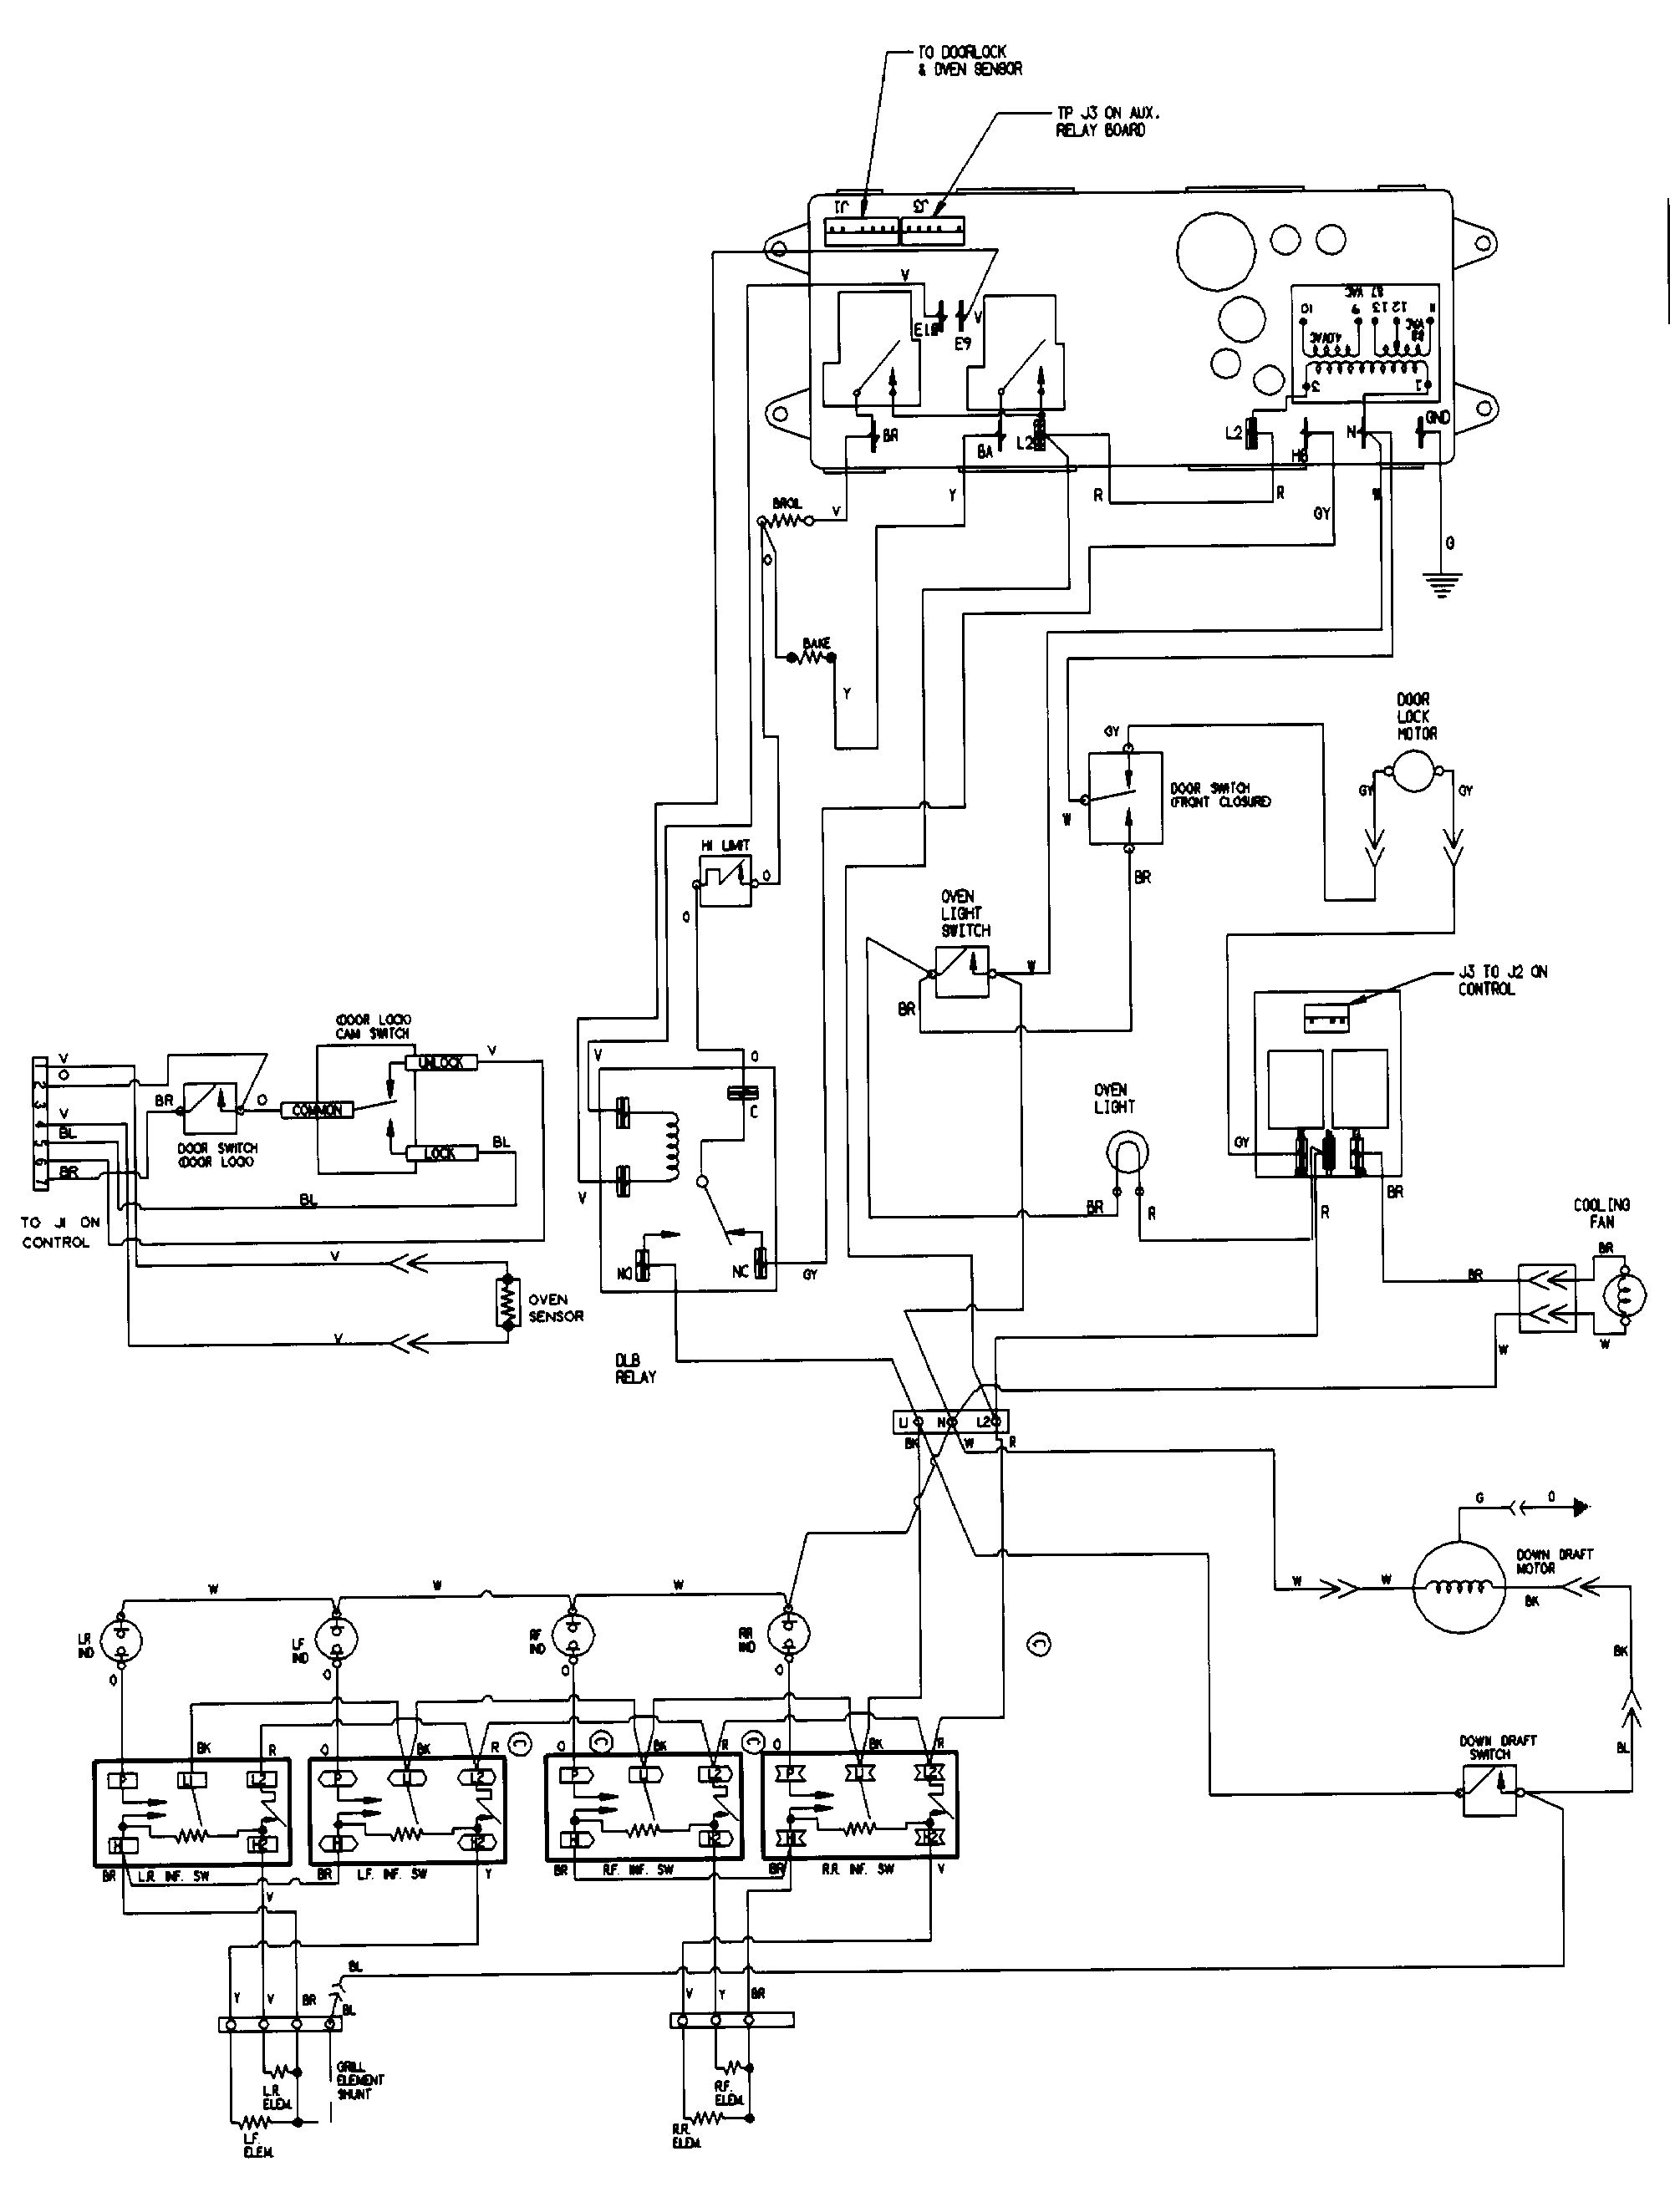 wiring information sve47100bc wc parts frigidaire 5304410951 relay and overload kit appliancepartspros GE Gas Oven Wiring Diagram at soozxer.org